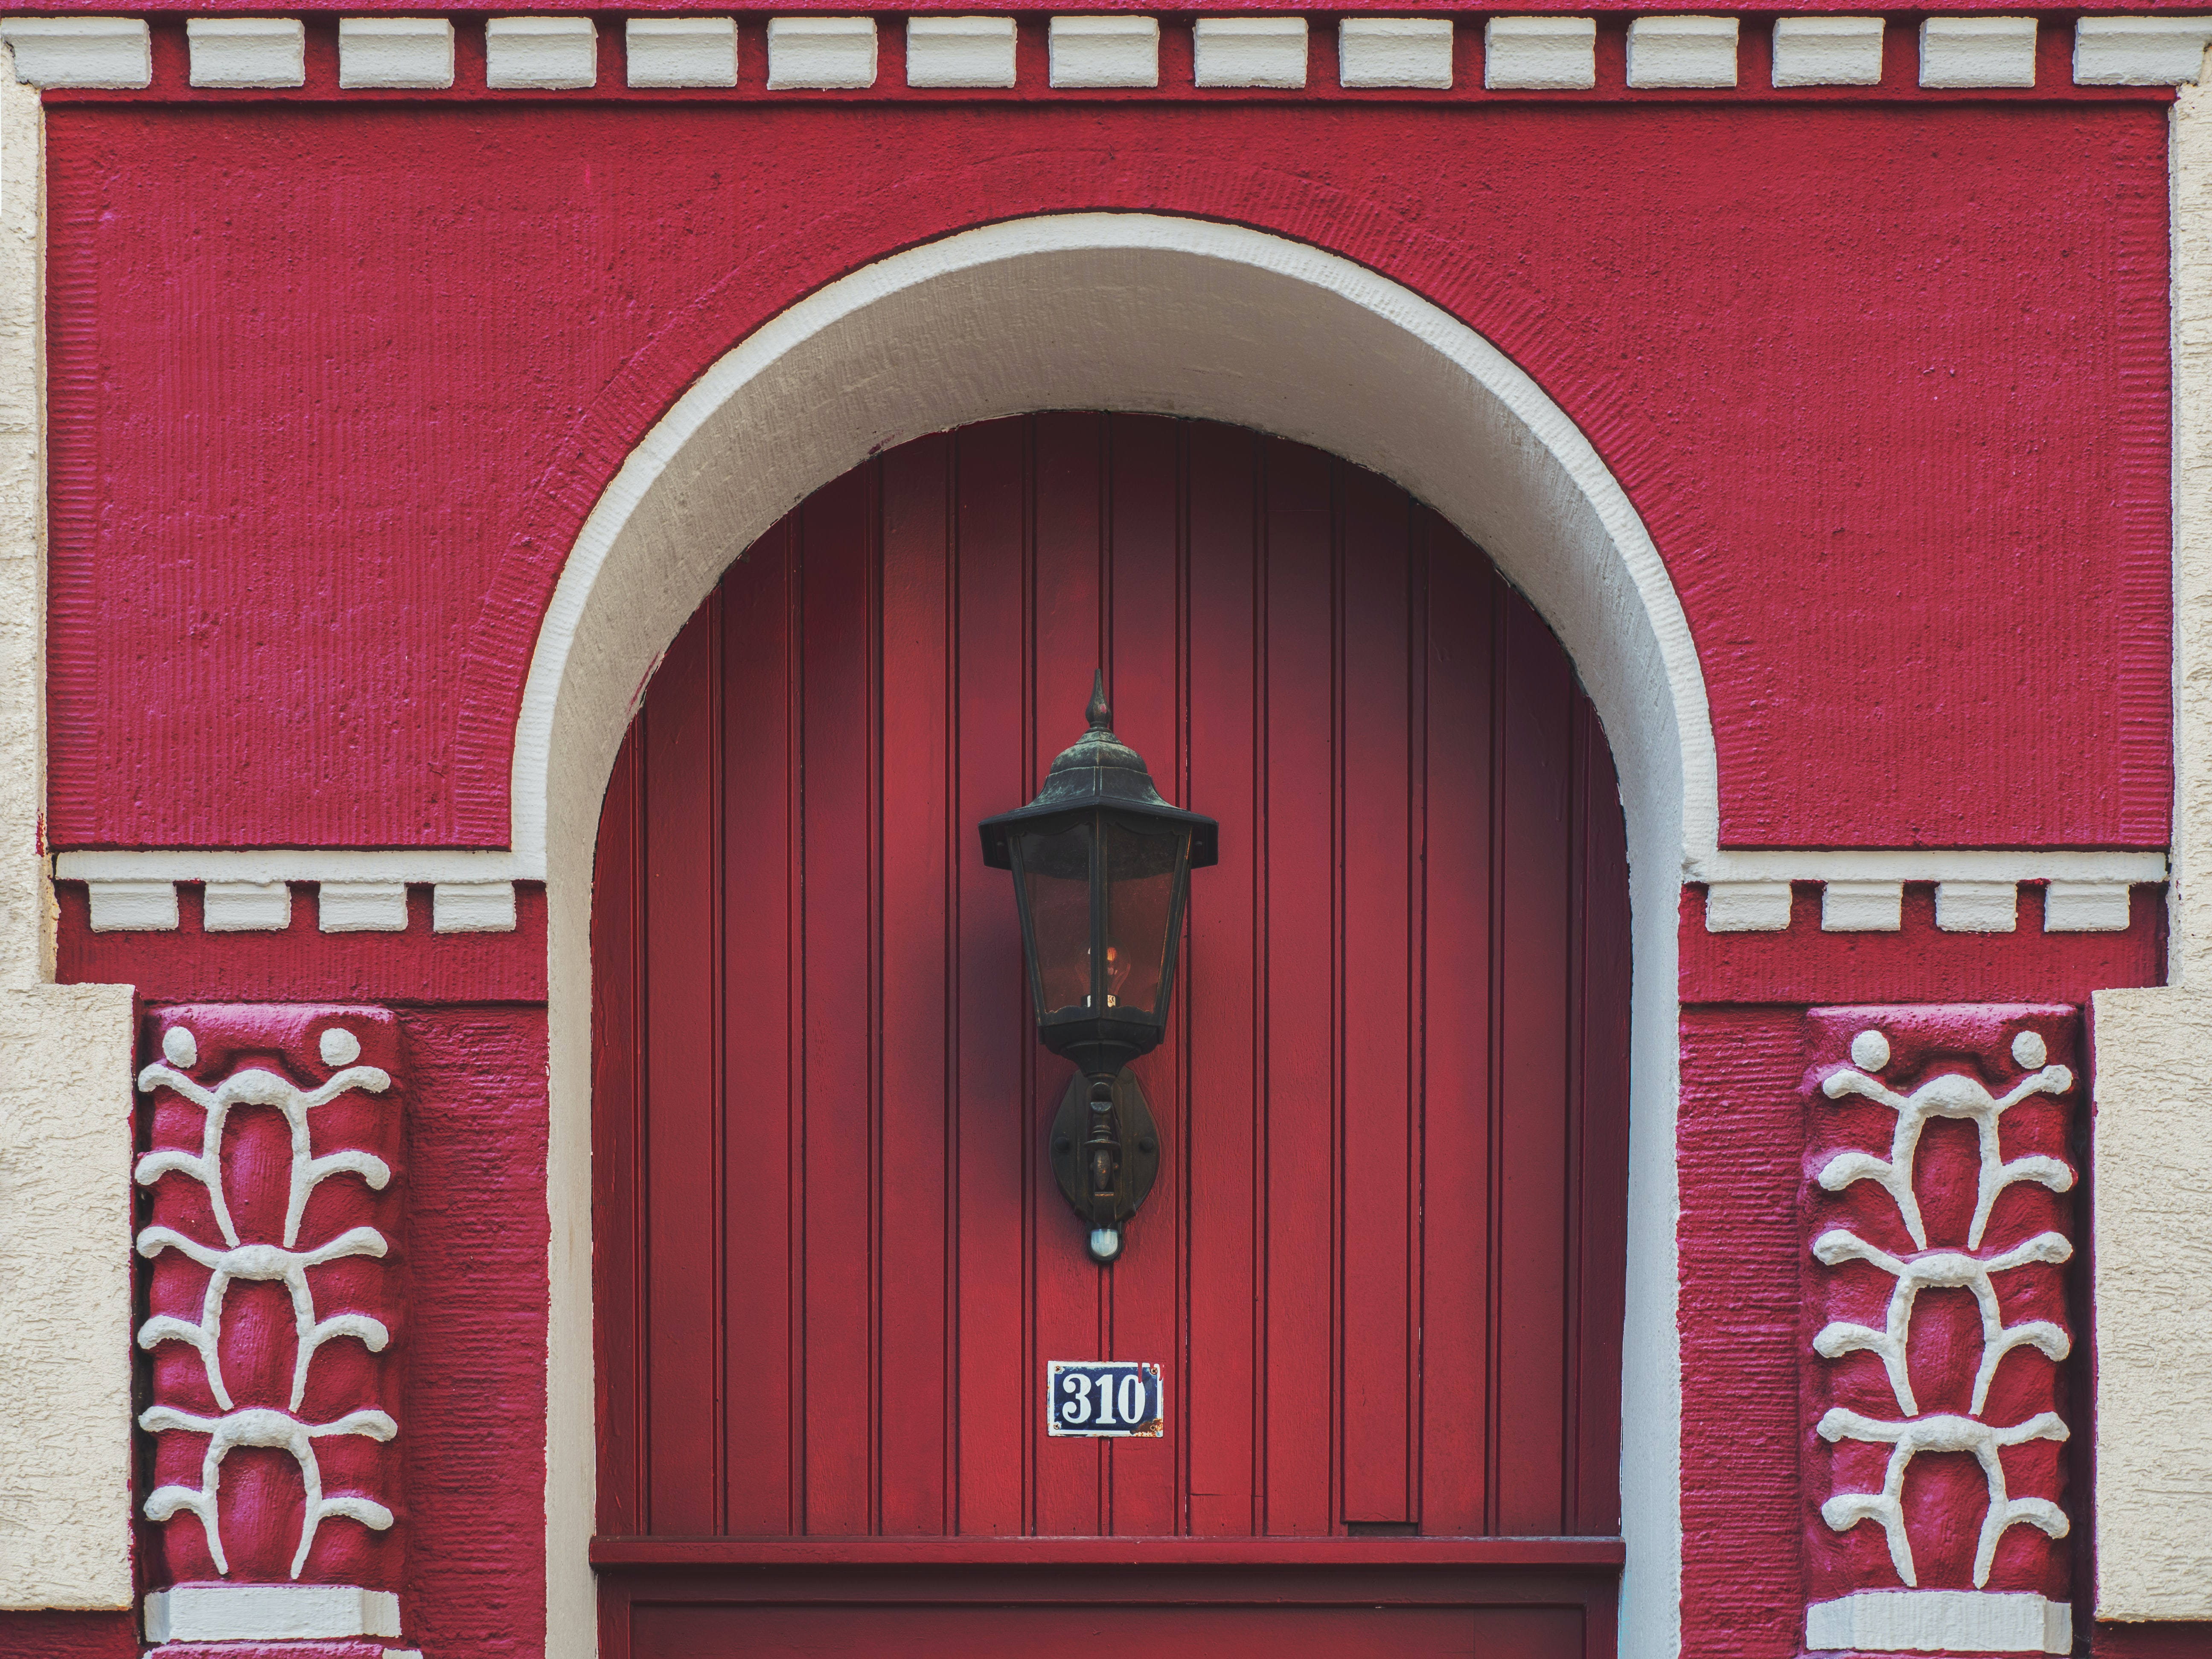 black wall sconce hanging on red wall